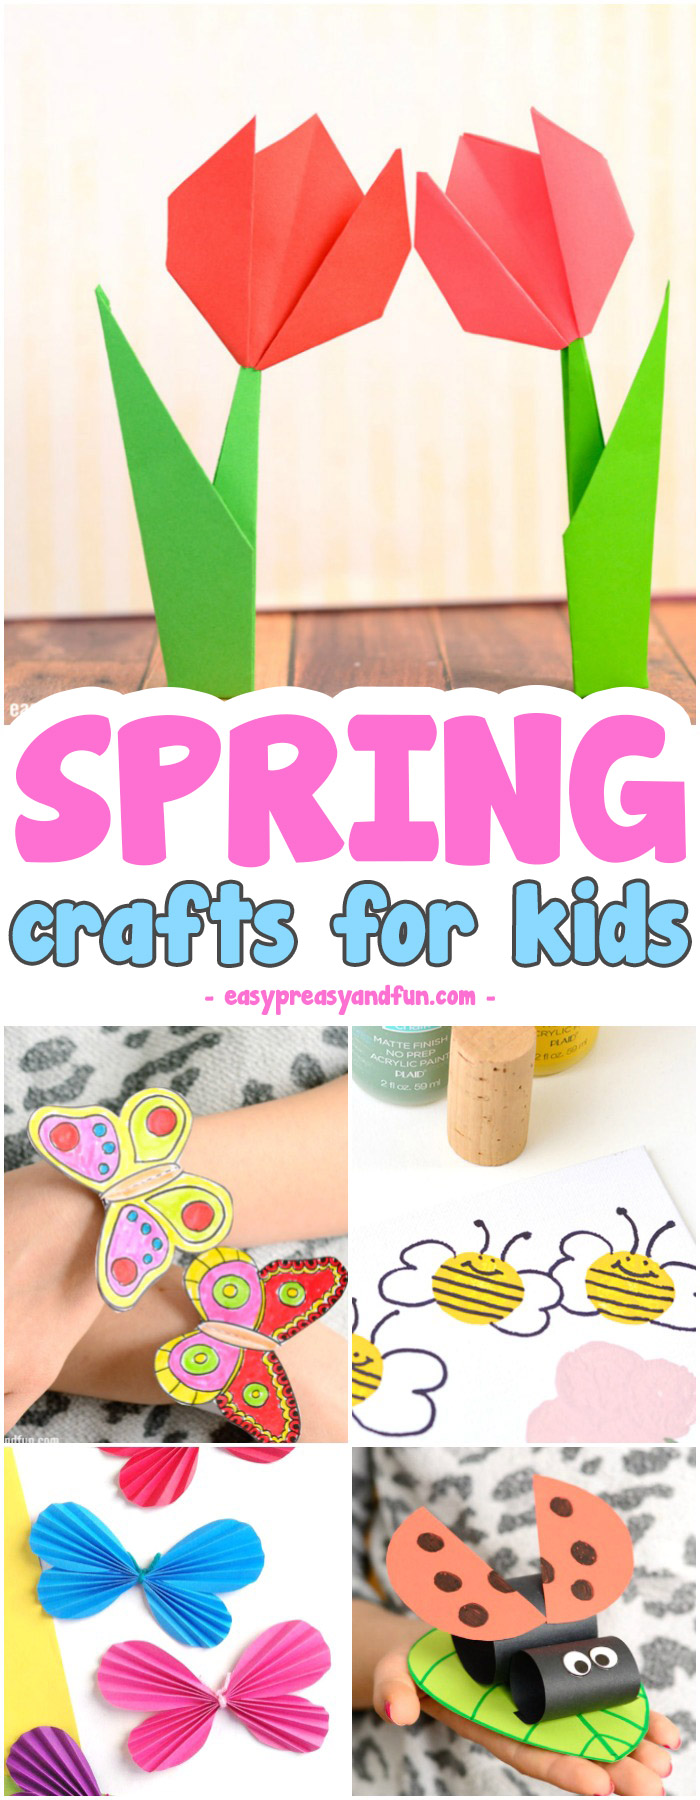 hight resolution of Spring Crafts for Kids - Art and Craft Project Ideas for All Ages - Easy  Peasy and Fun